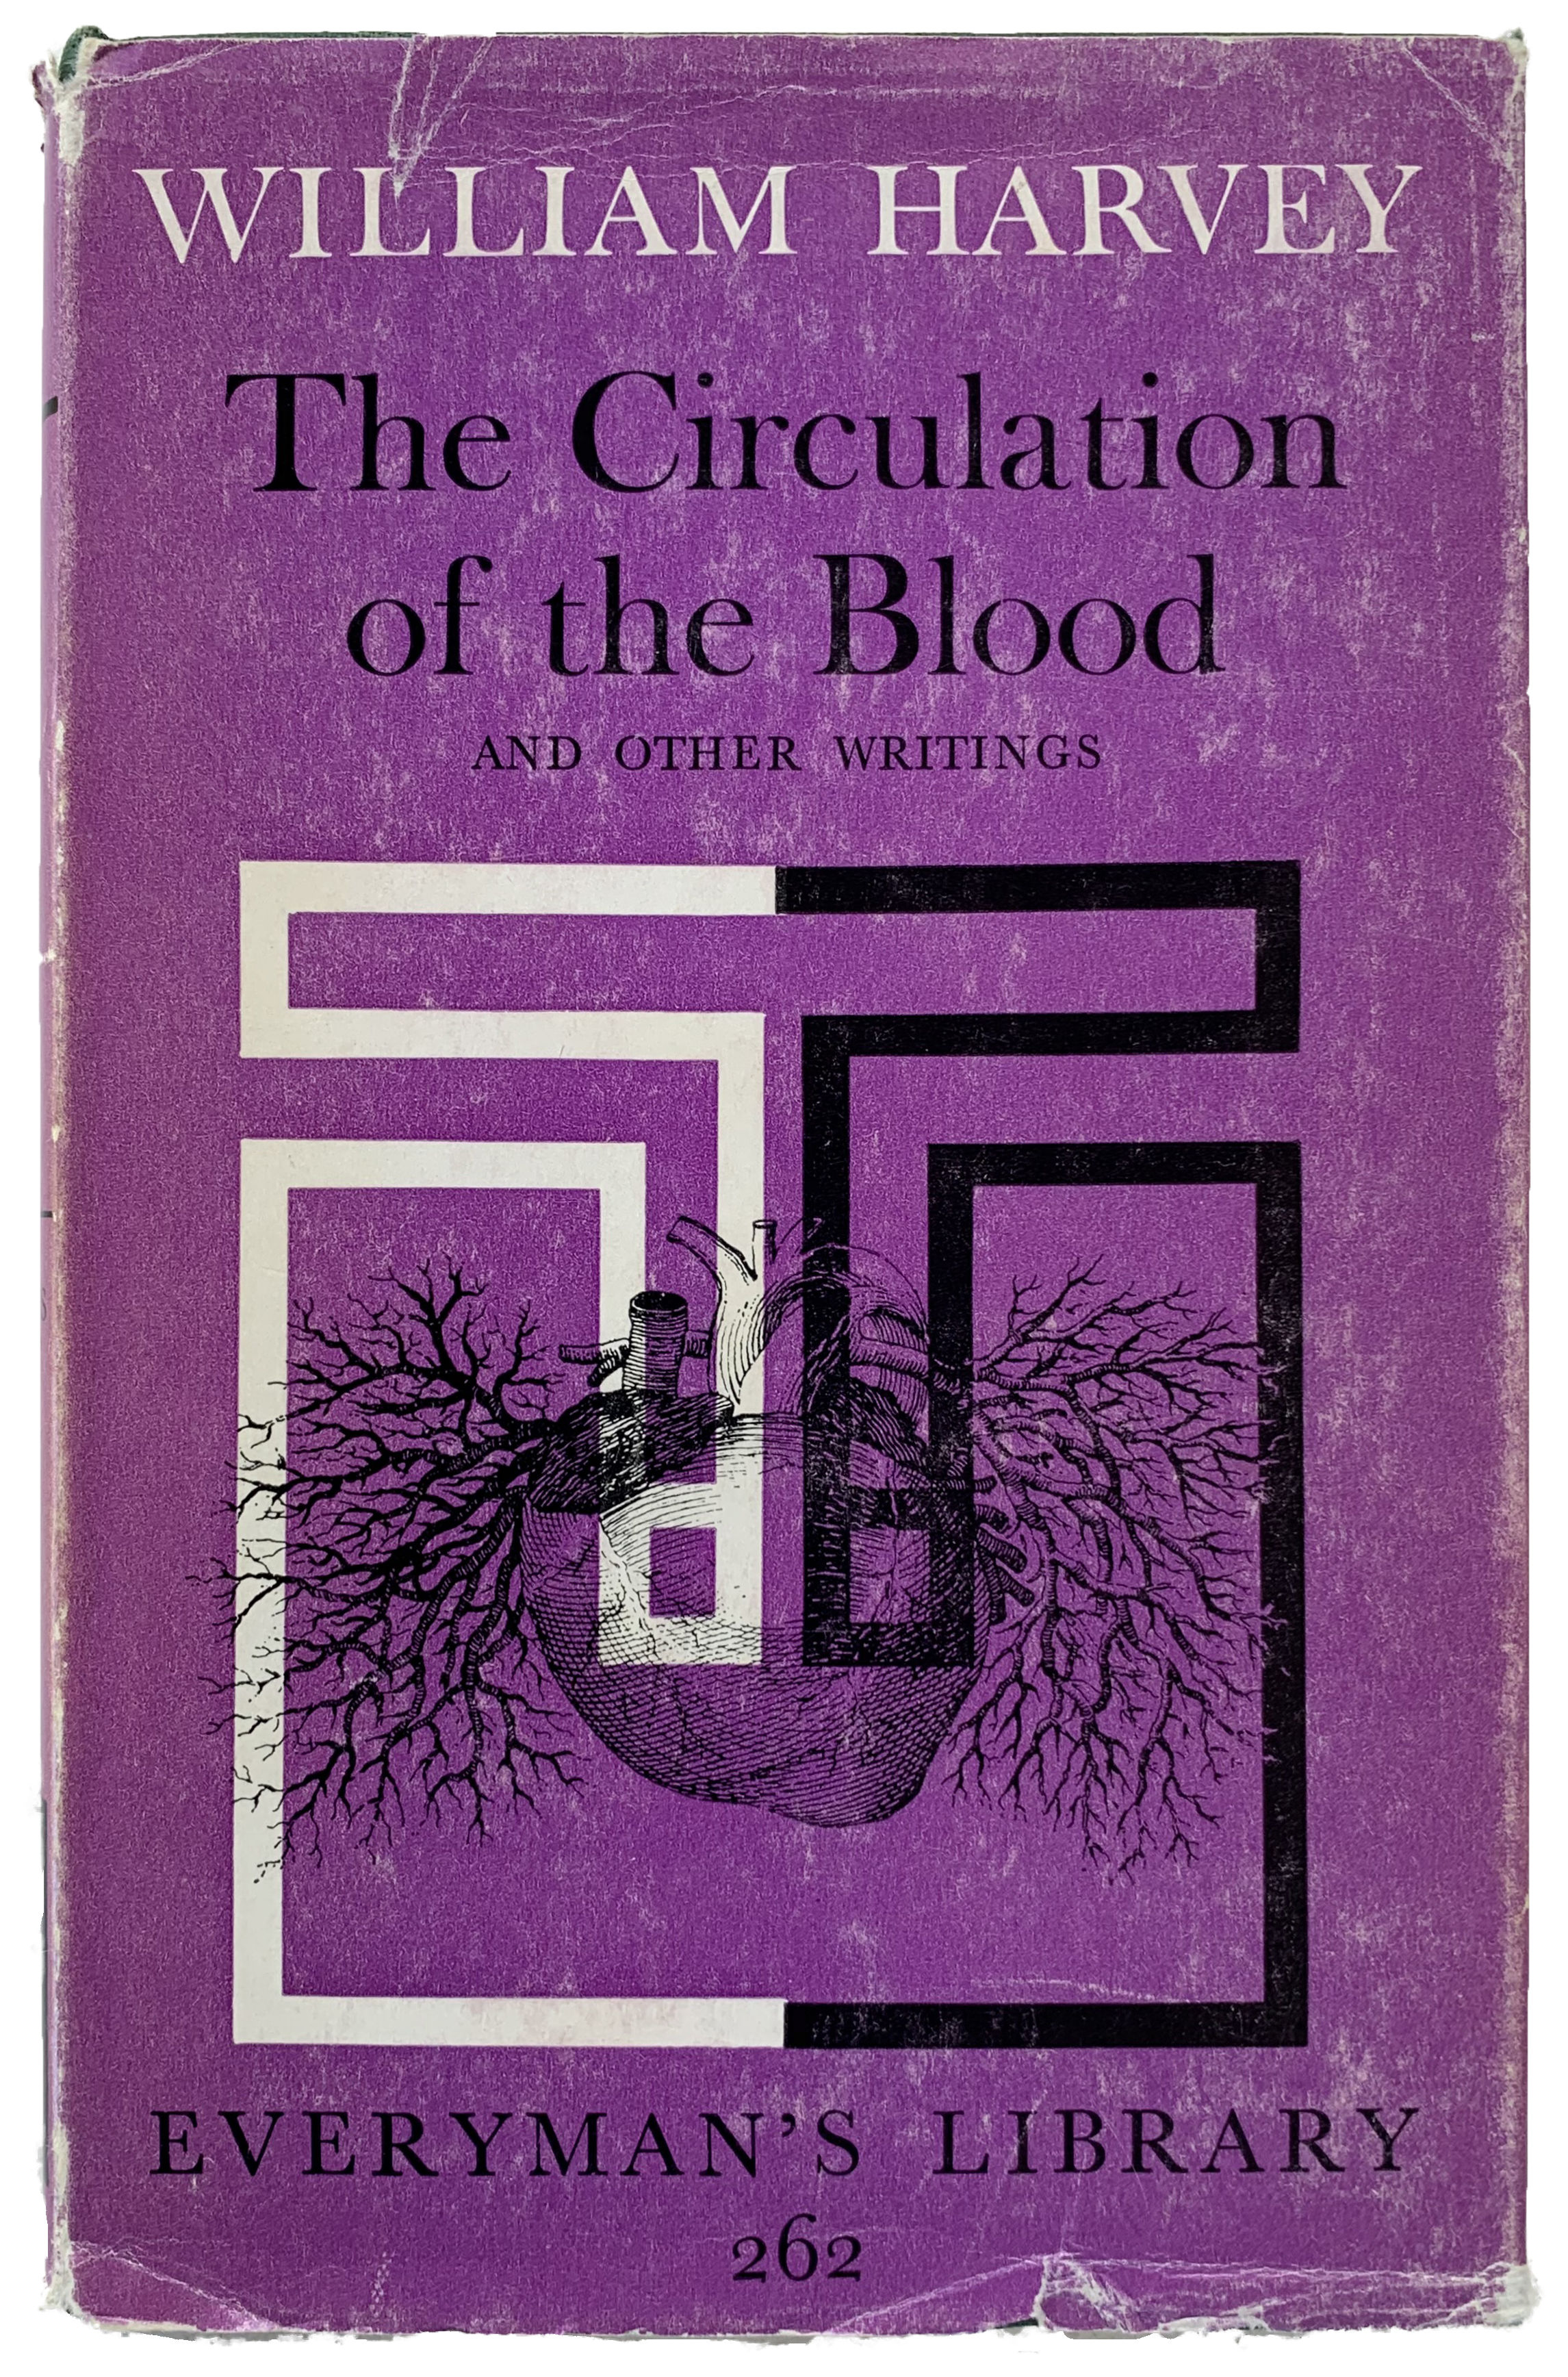 Image for The Circulation of the Blood and other writings. Translated by Kenneth J. Franklin.